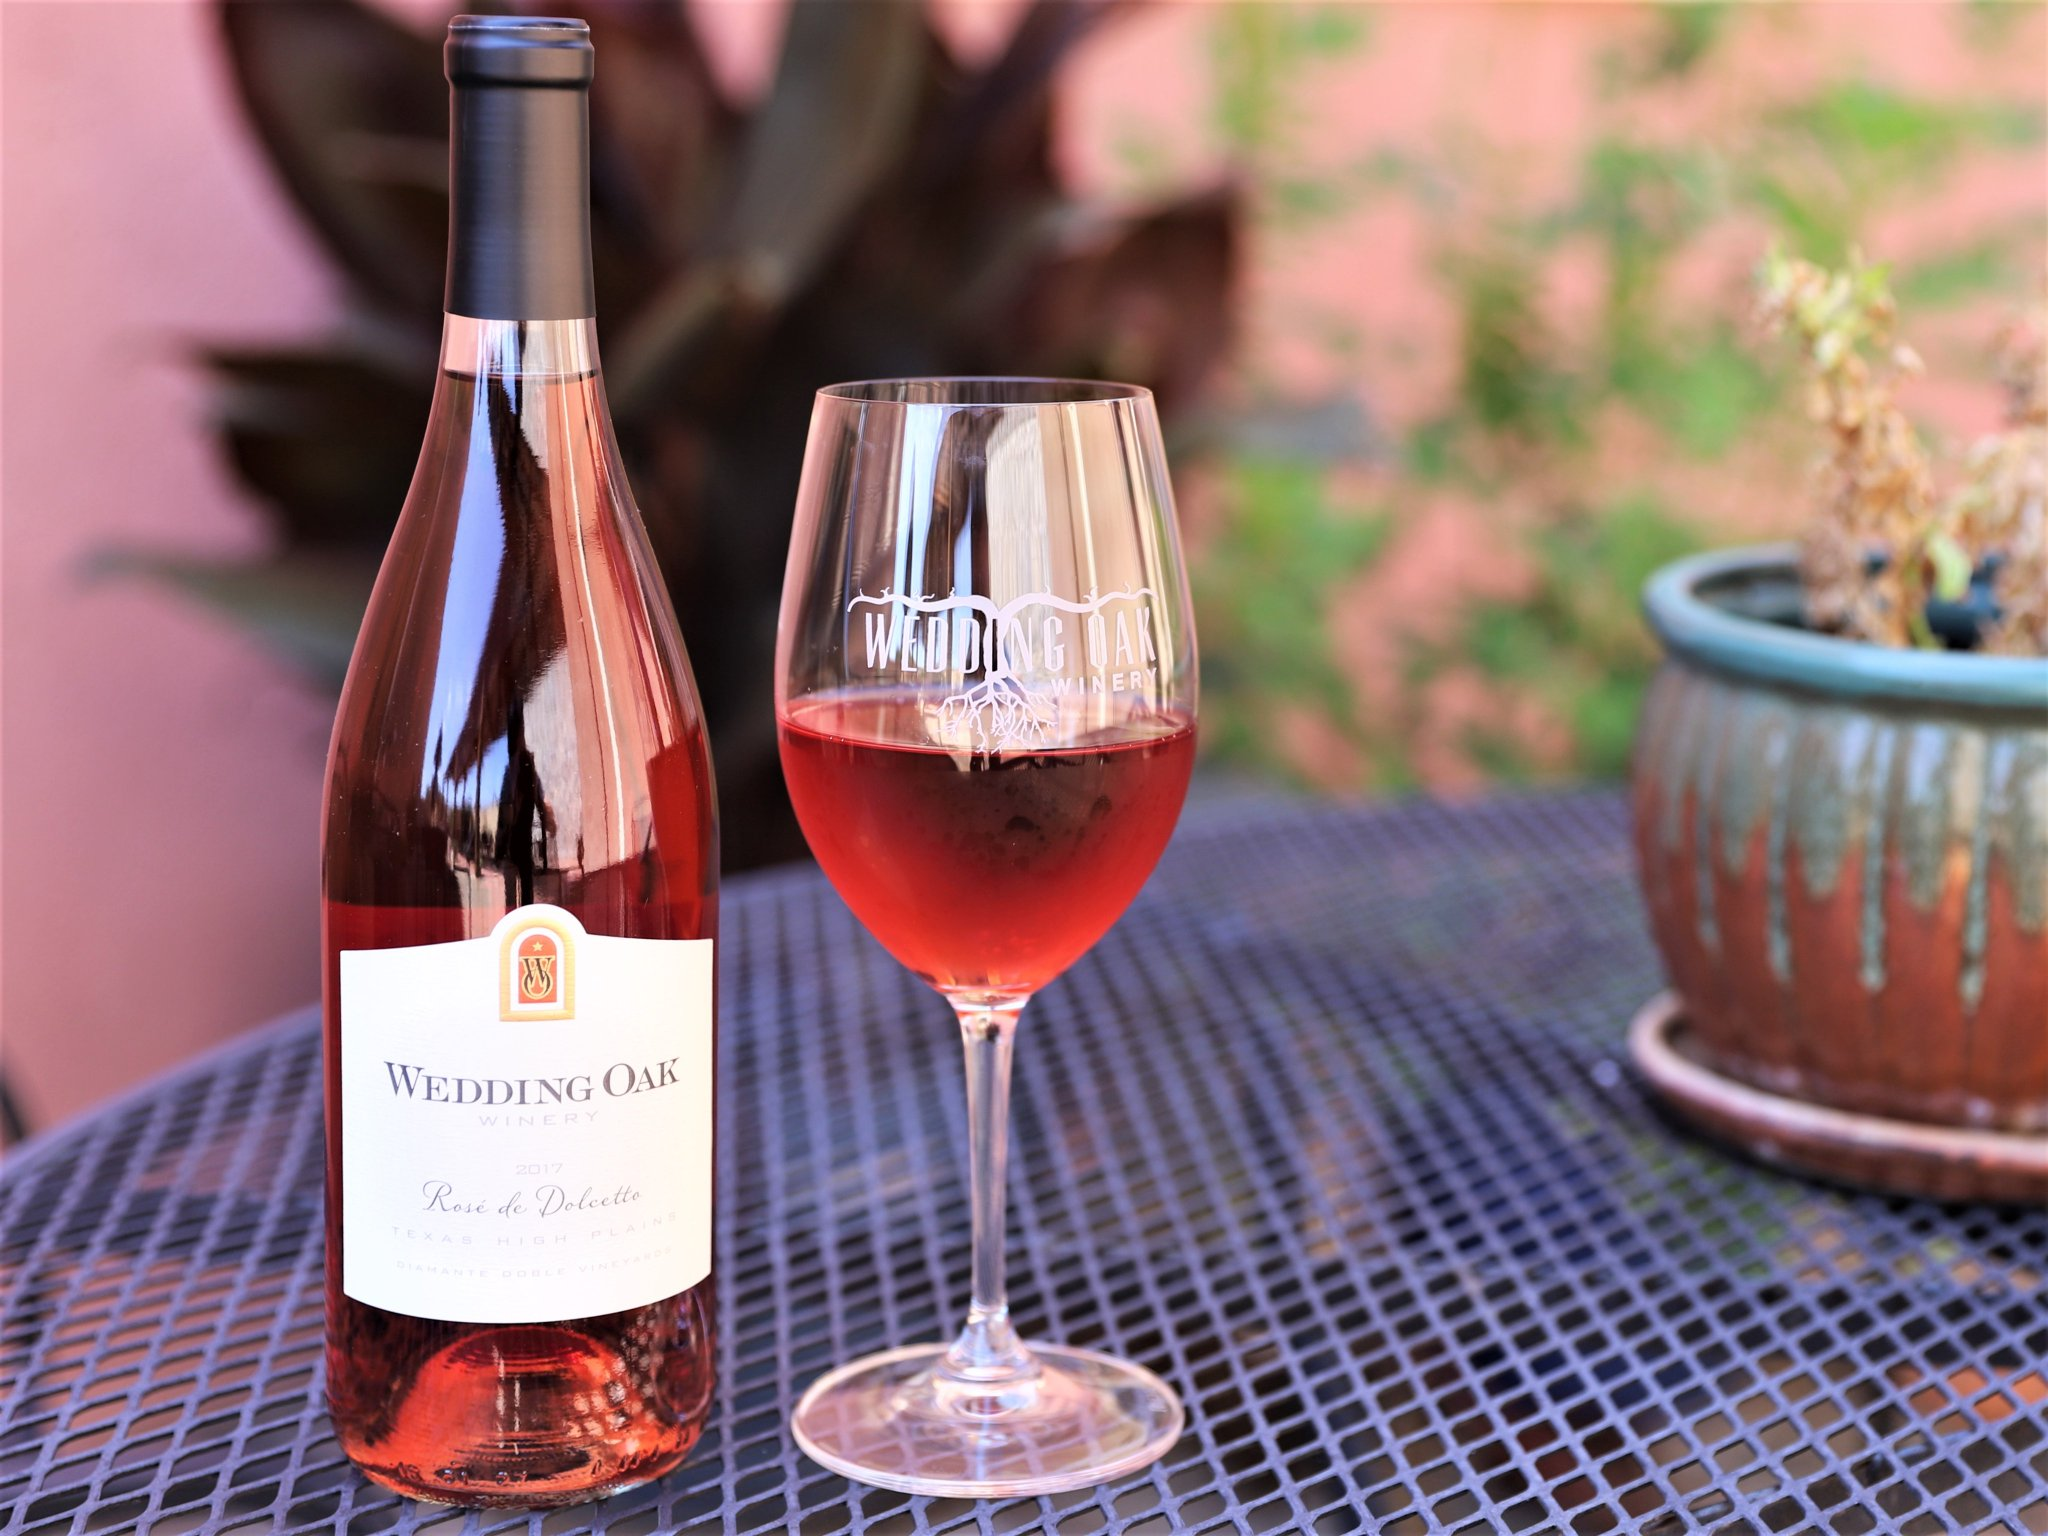 It's a Rosé kind of day.  The sultry afternoon begs for a crisp, cool, dry rosé wine. Grab a bottle and chill.  #wine #TXwine #RoseAllDay https://t.co/g9rkxrpVE4